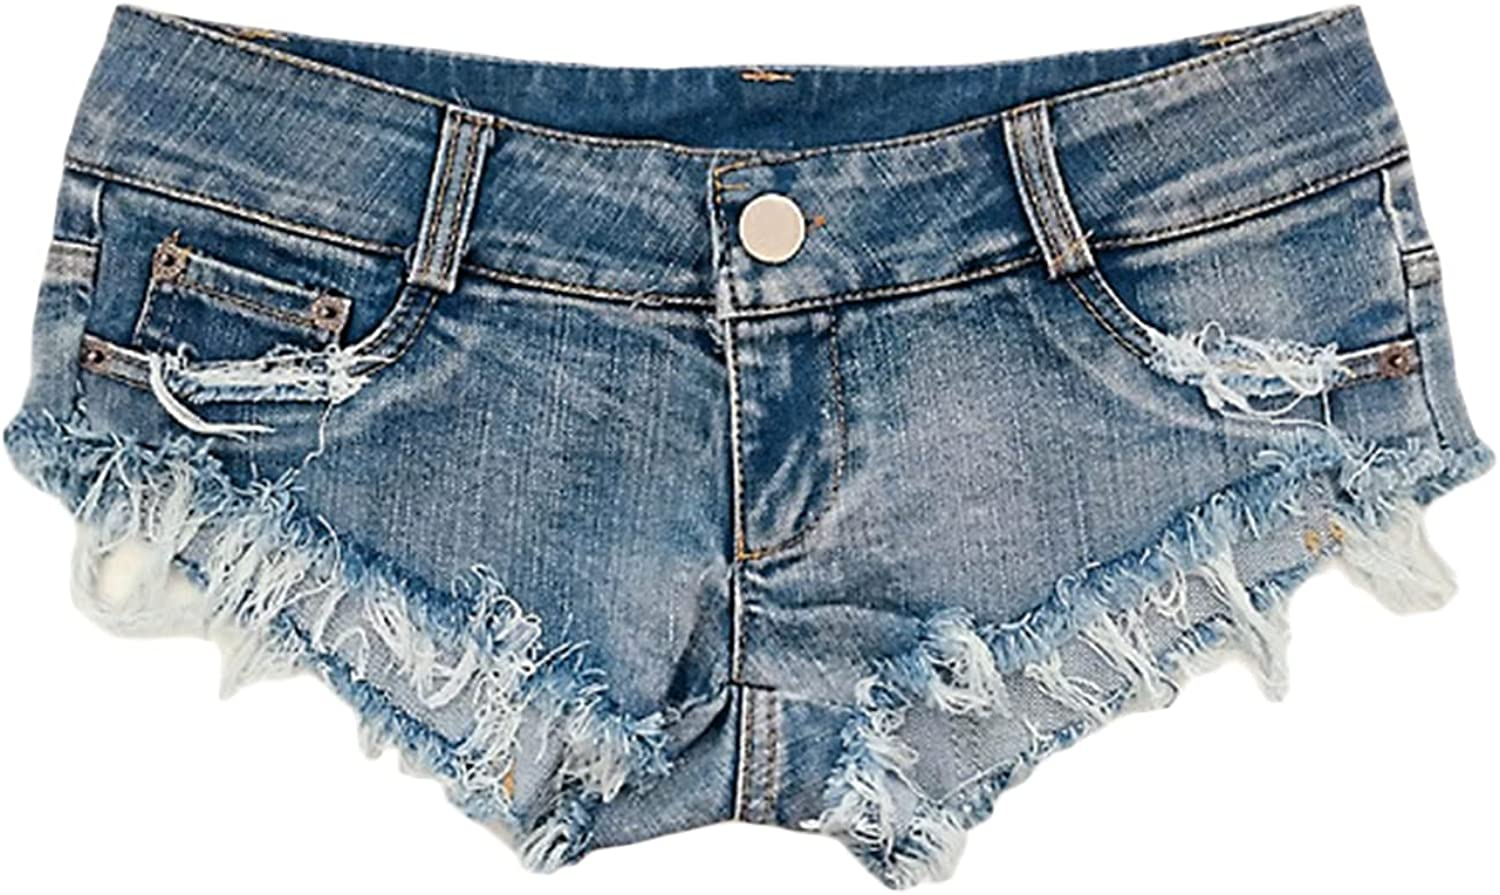 Women's Low-Rise Denim Shorts Distressed Cut Off Mini Hot Pants Frayed Ripped Stretch Casual Micro Jeans Hot Pant